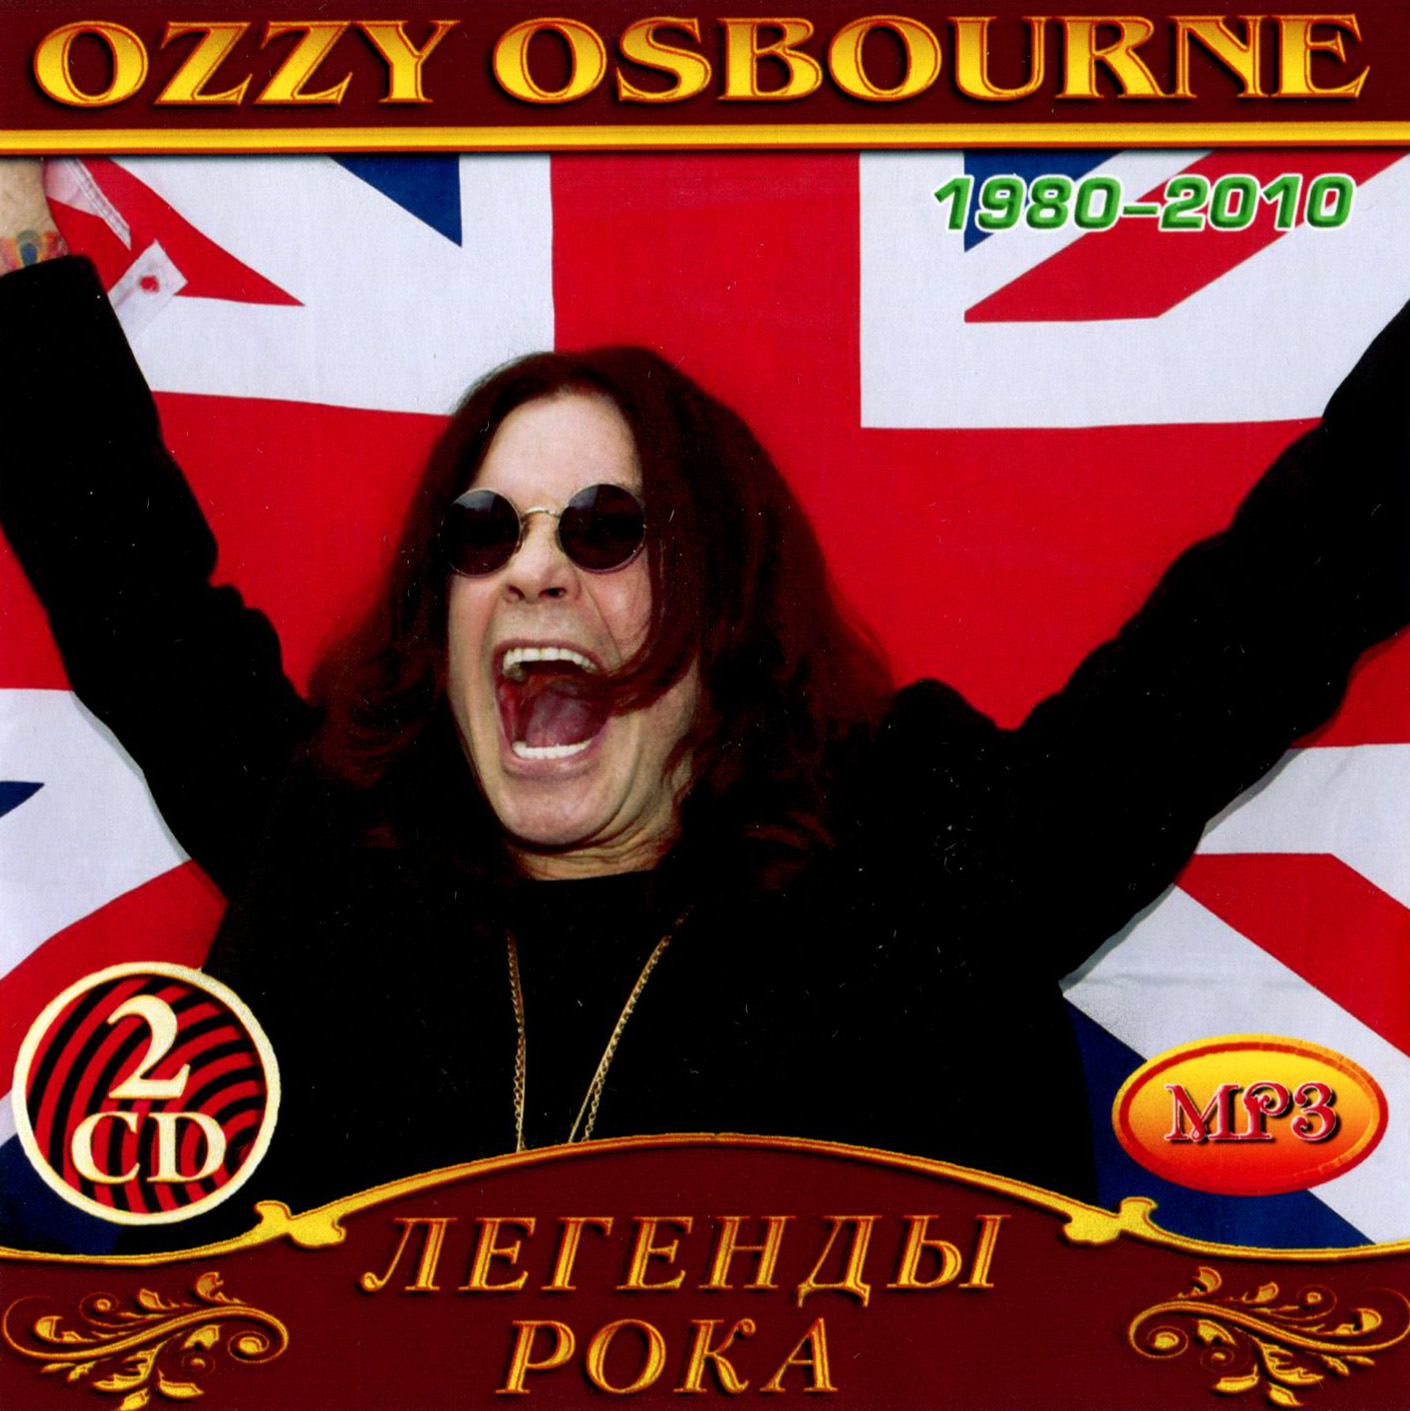 Ozzy Osbourne 2cd [mp3]